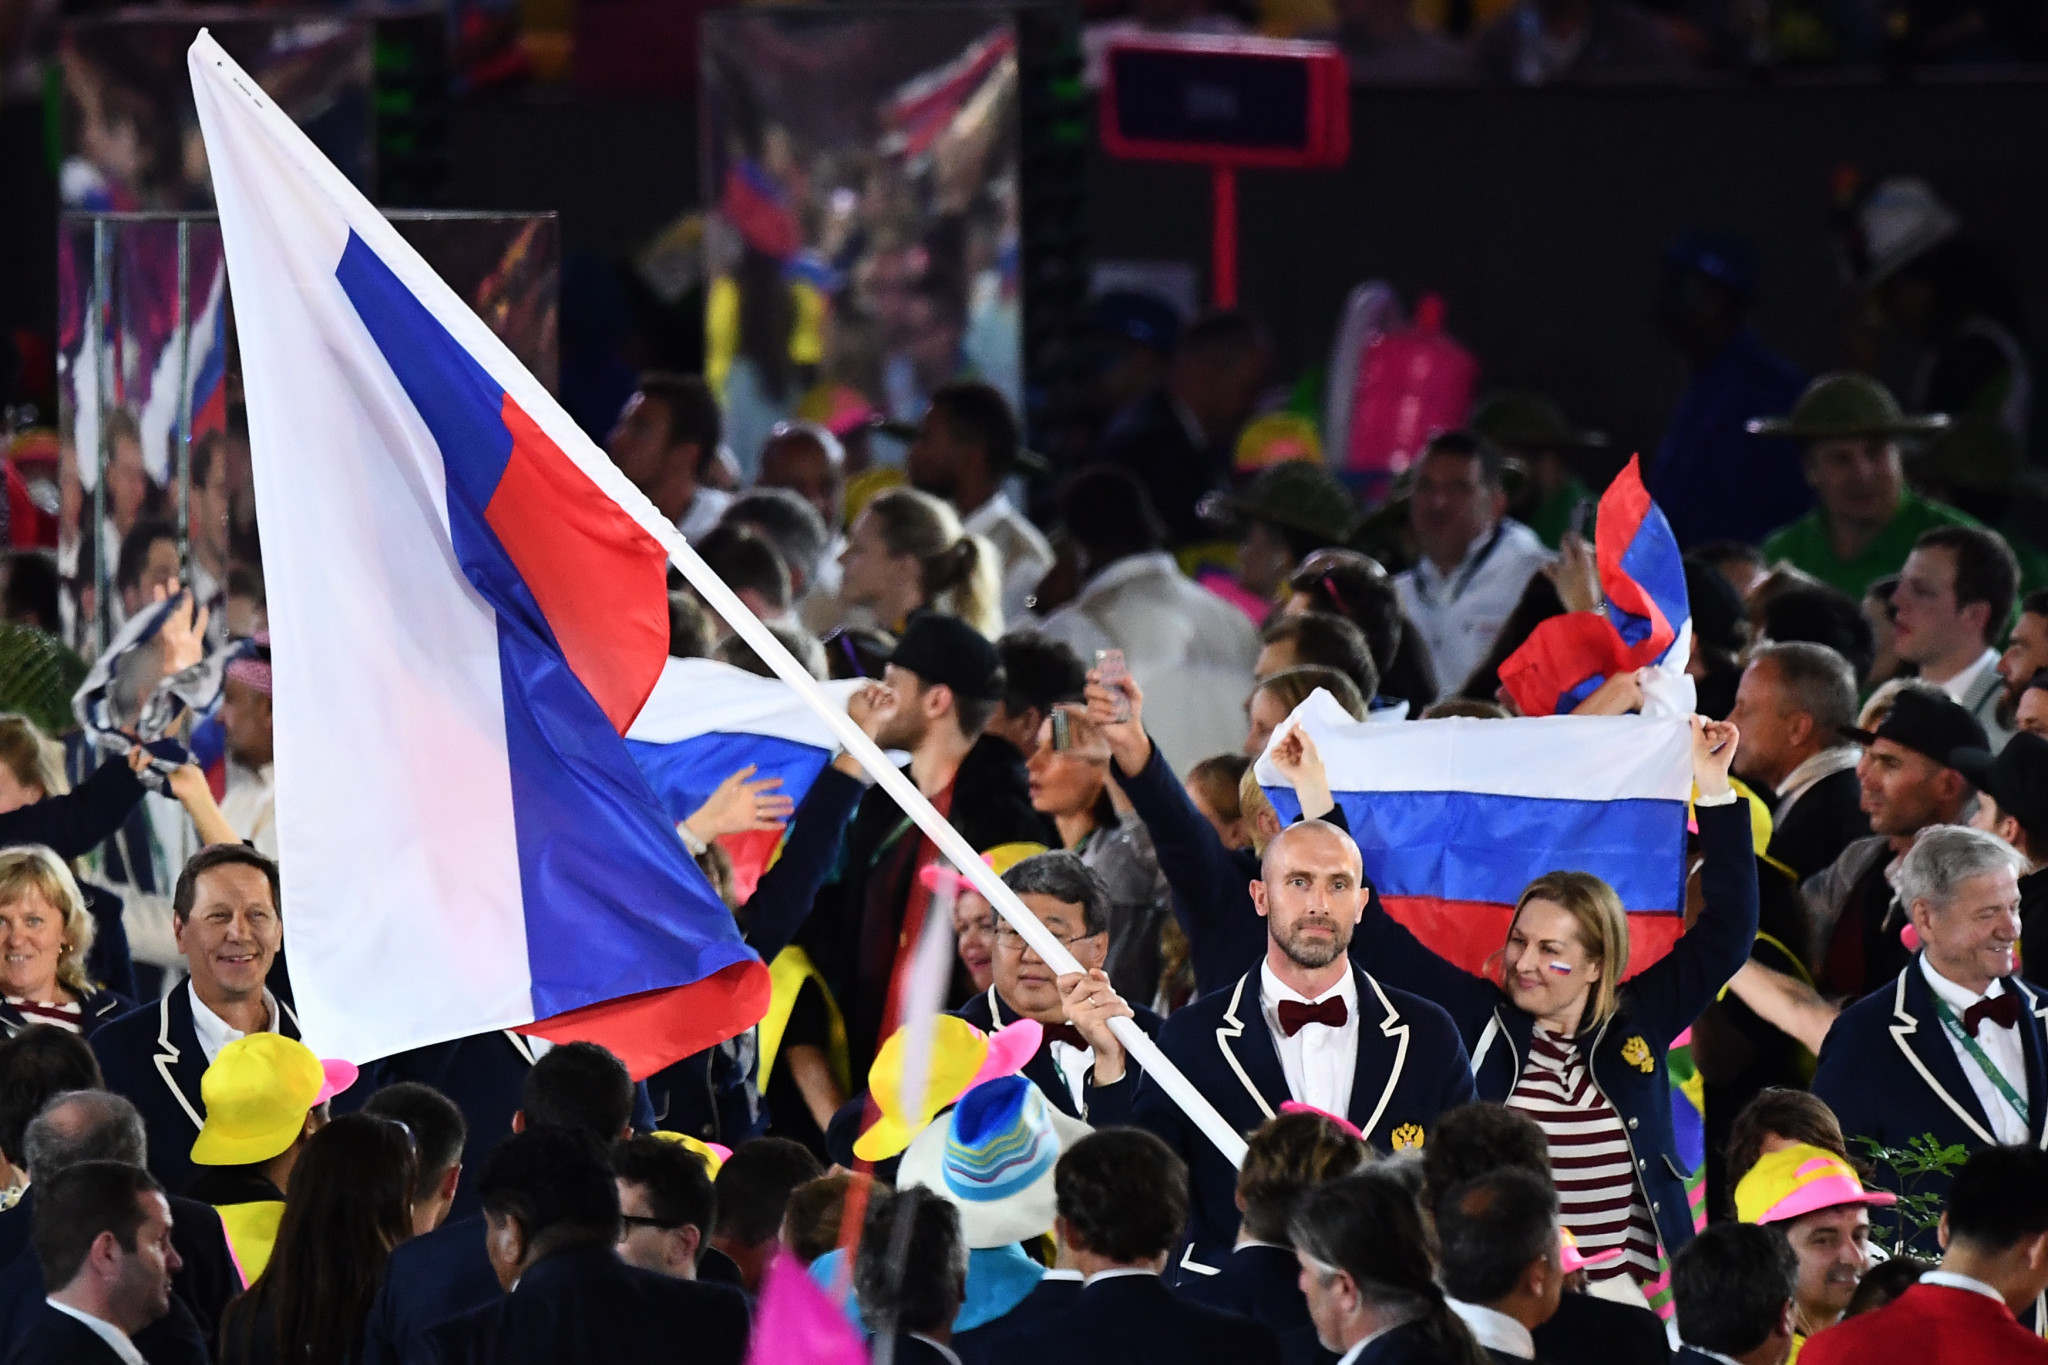 The Russian flag will not be allowed to be displayed at an Olympic Games and World Championships that falls during the period when the sanctions are in force ©Getty Images